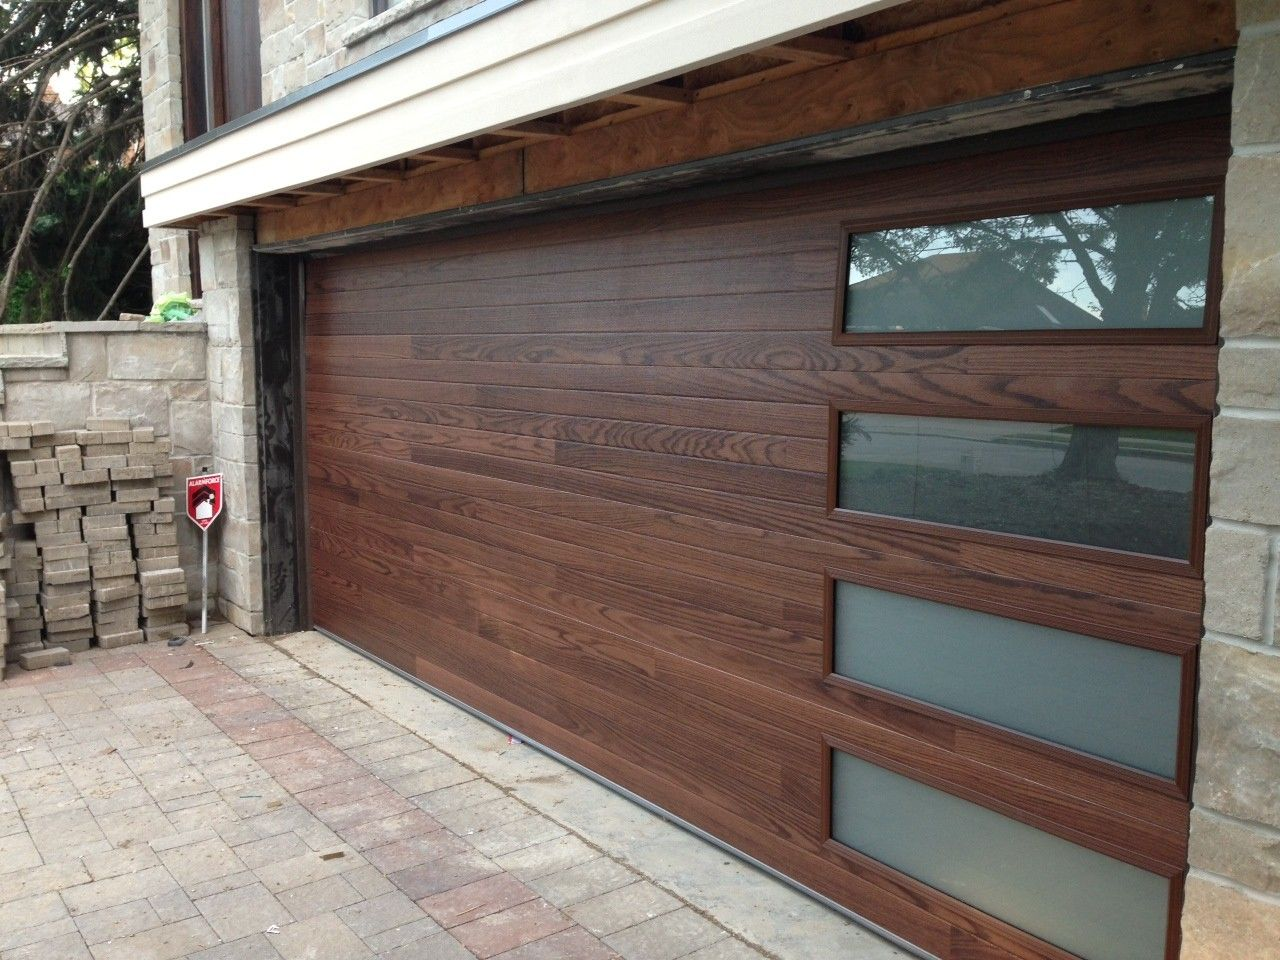 Glass garage door interior - Modern Garage Modern Garage Door Modern 2 Car Garage Doors